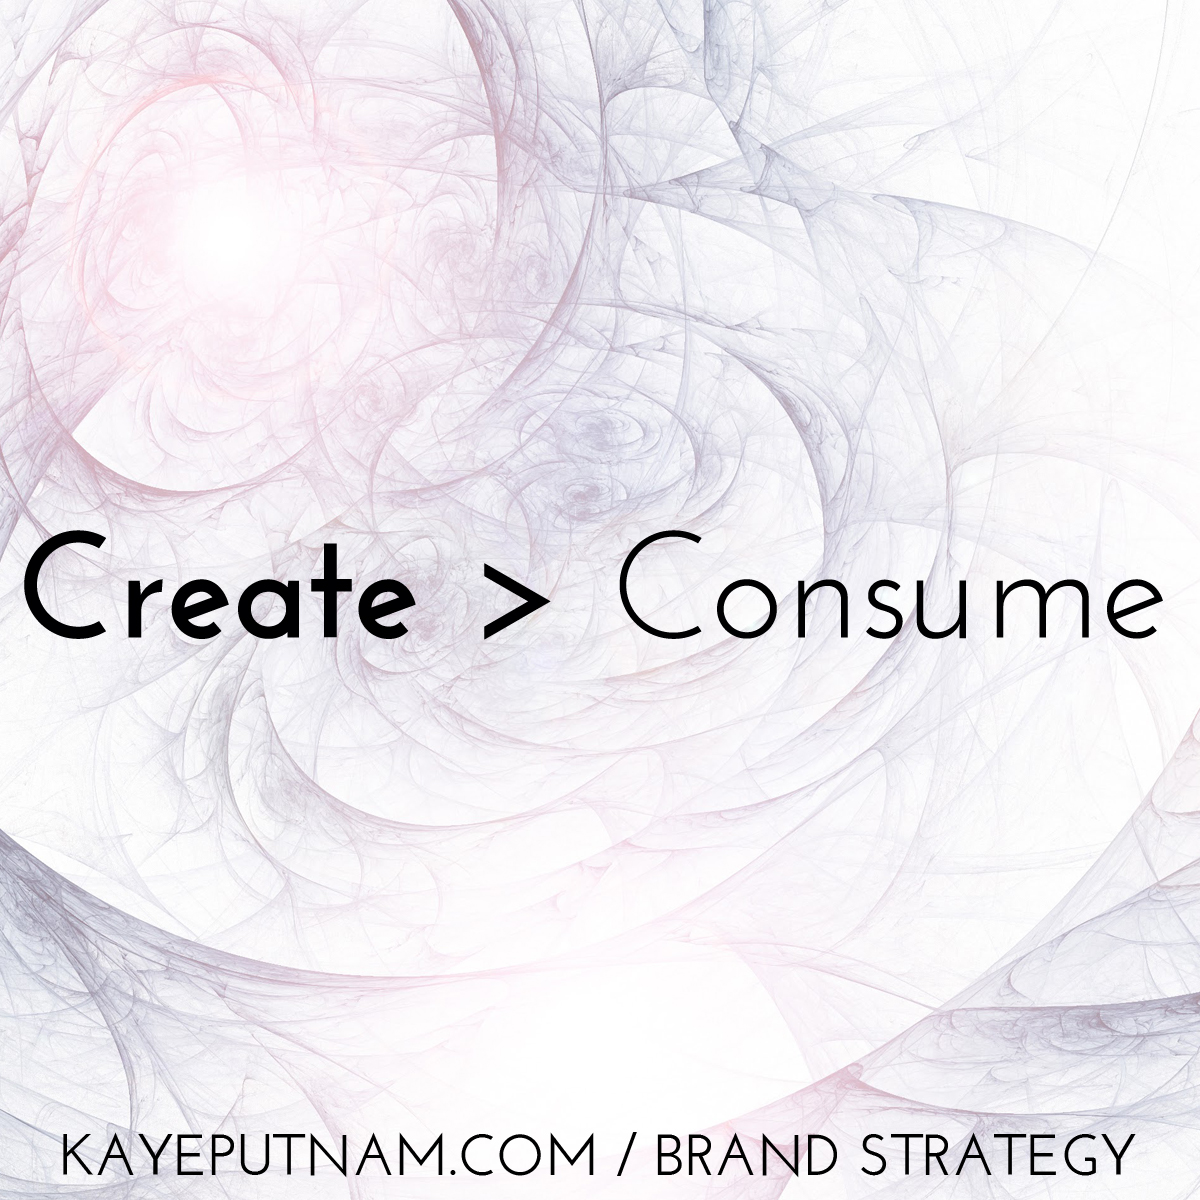 Create > Consume #InDemandBrand